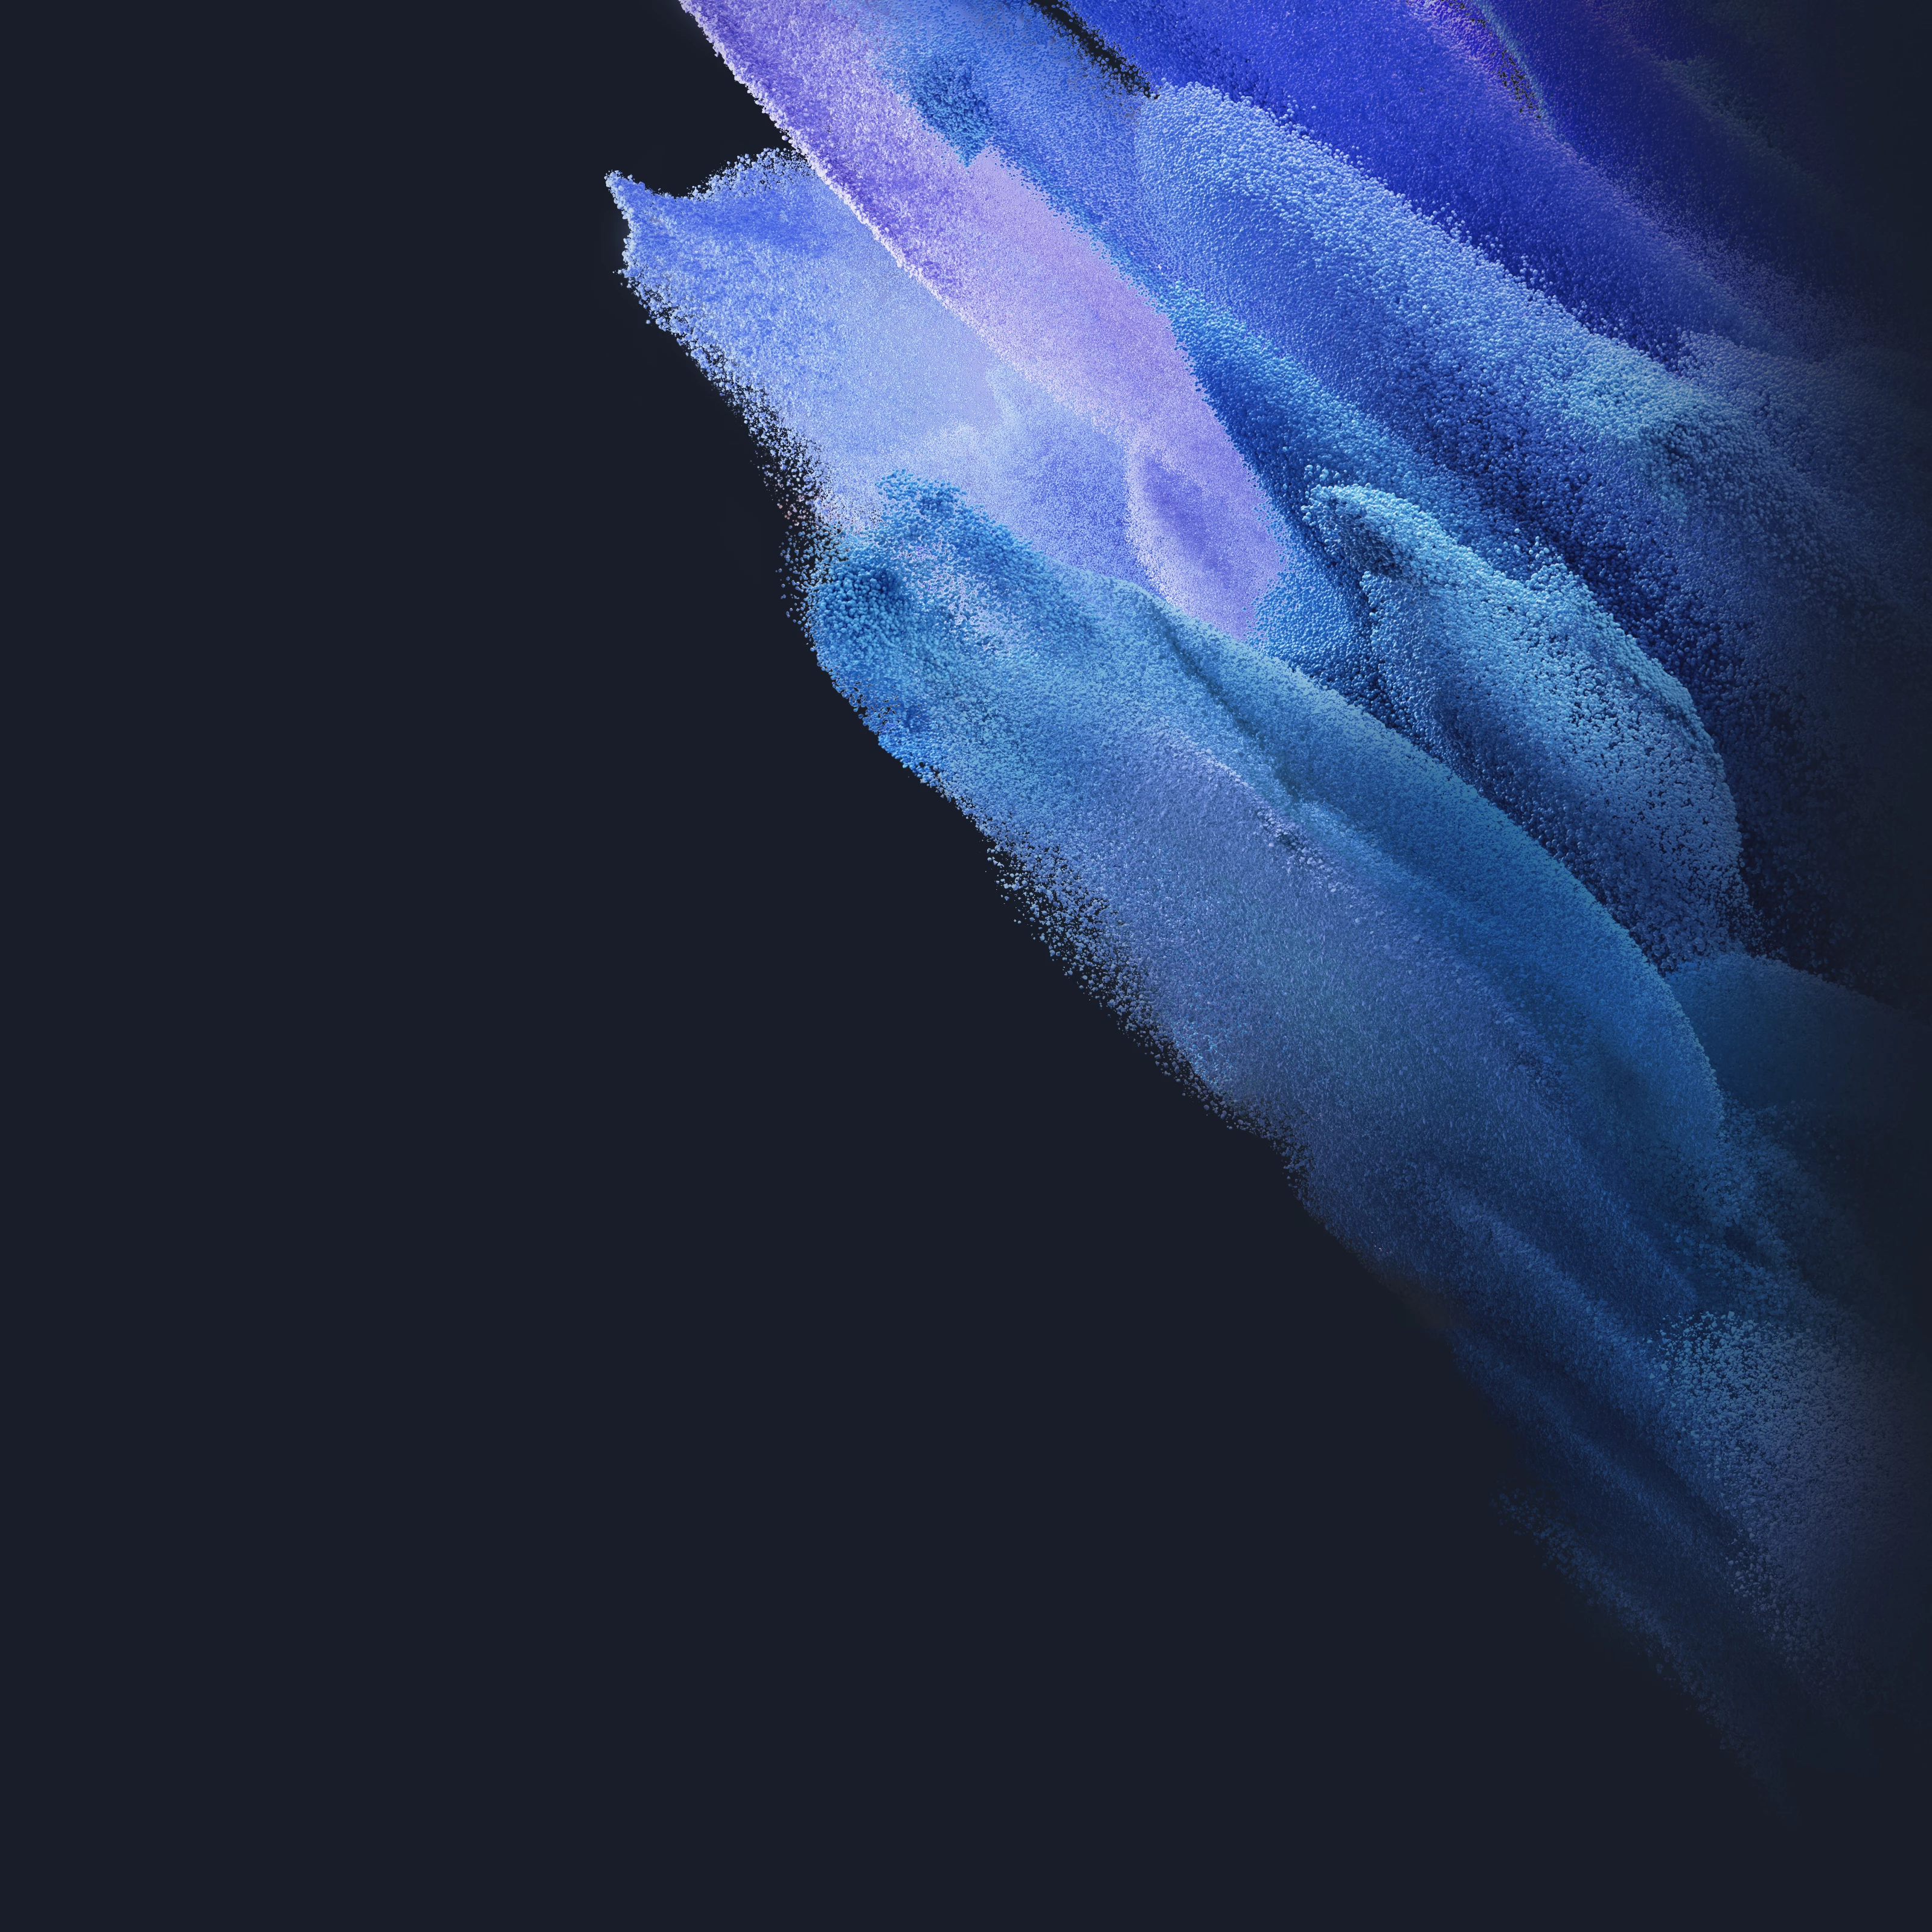 Samsung Galaxy S21 Stock Wallpapers